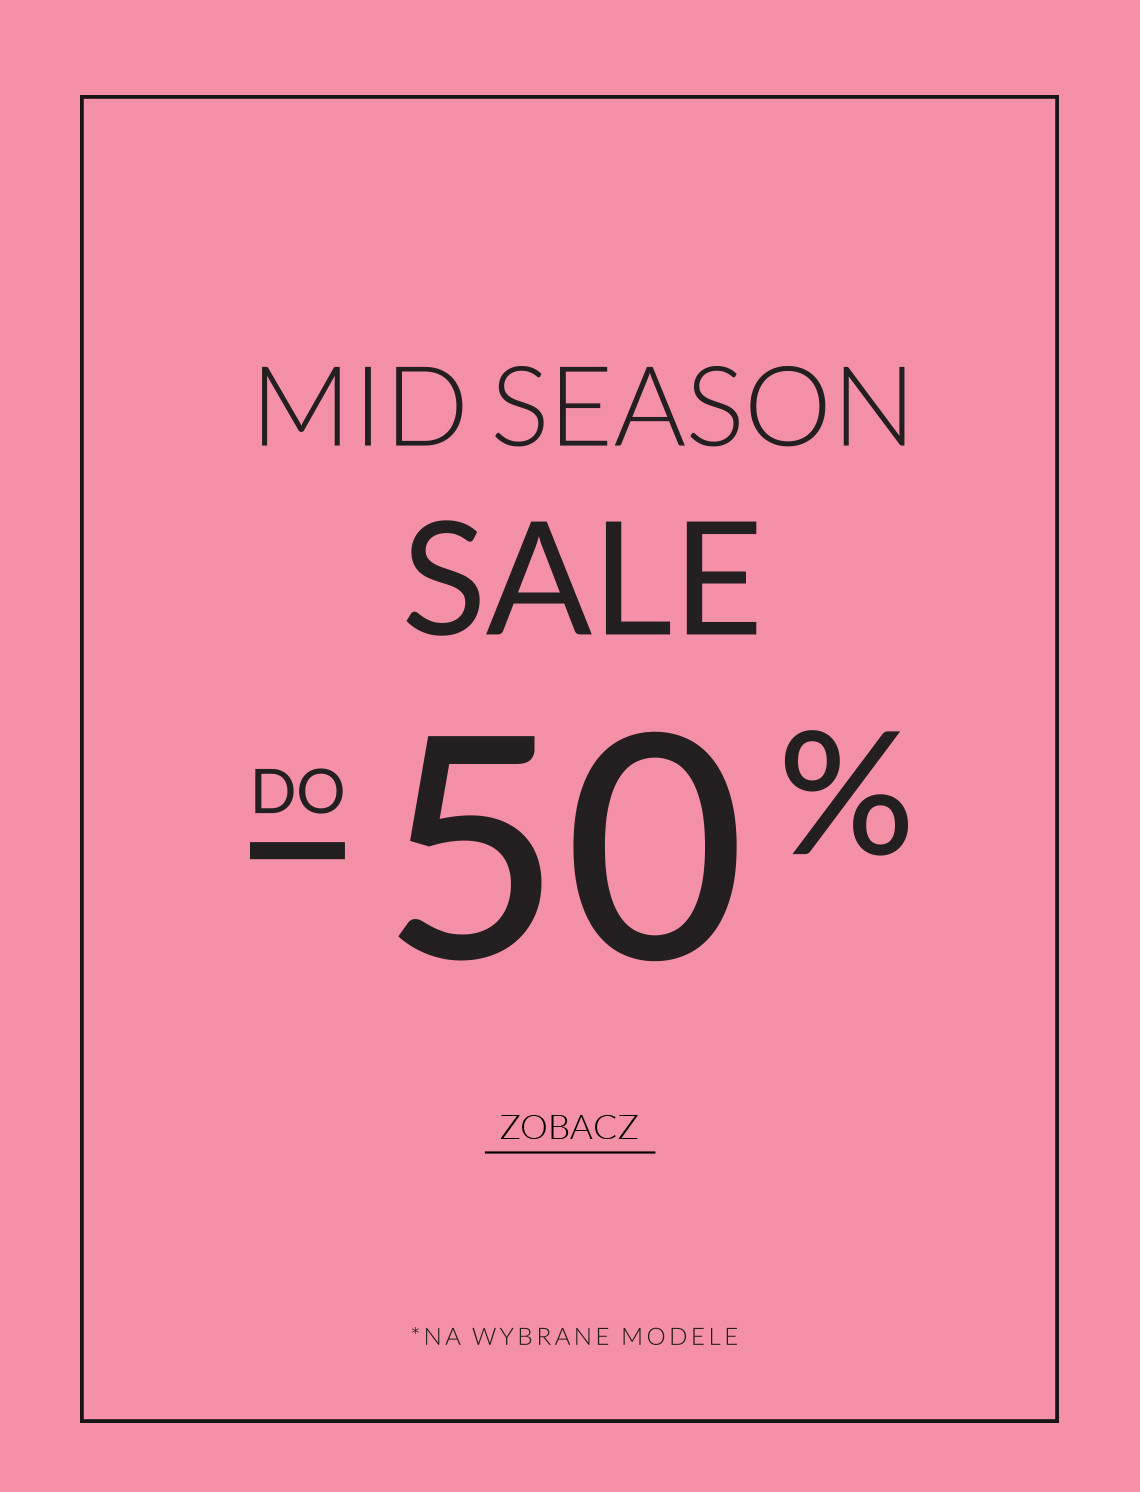 Mid Season Sale FW18